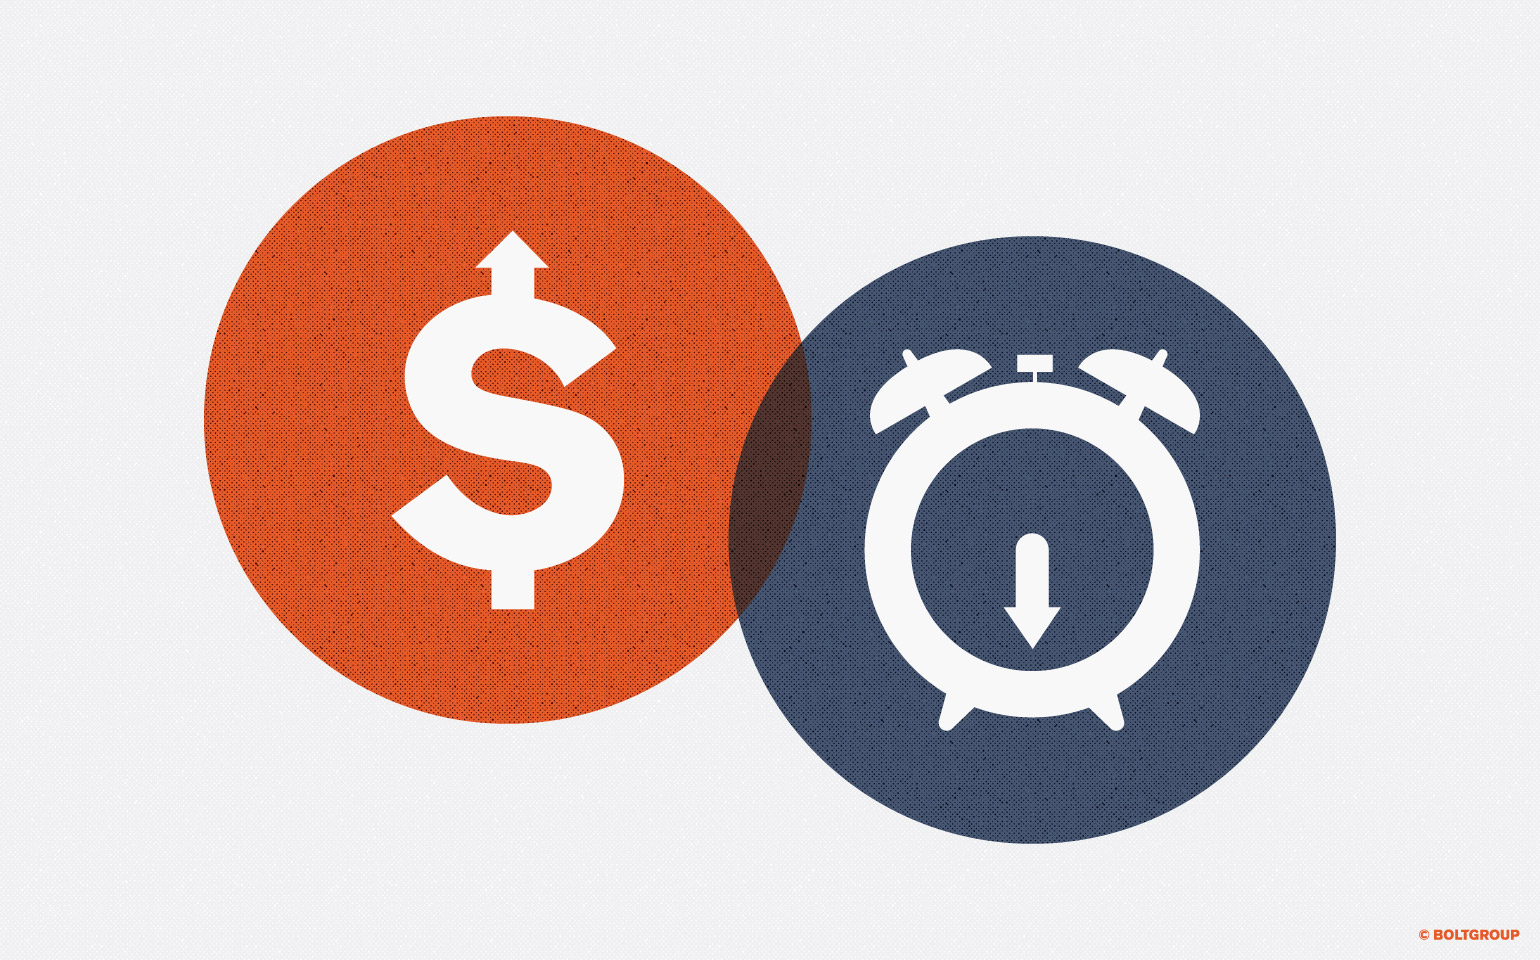 illustration of dollar sign overlapping clock